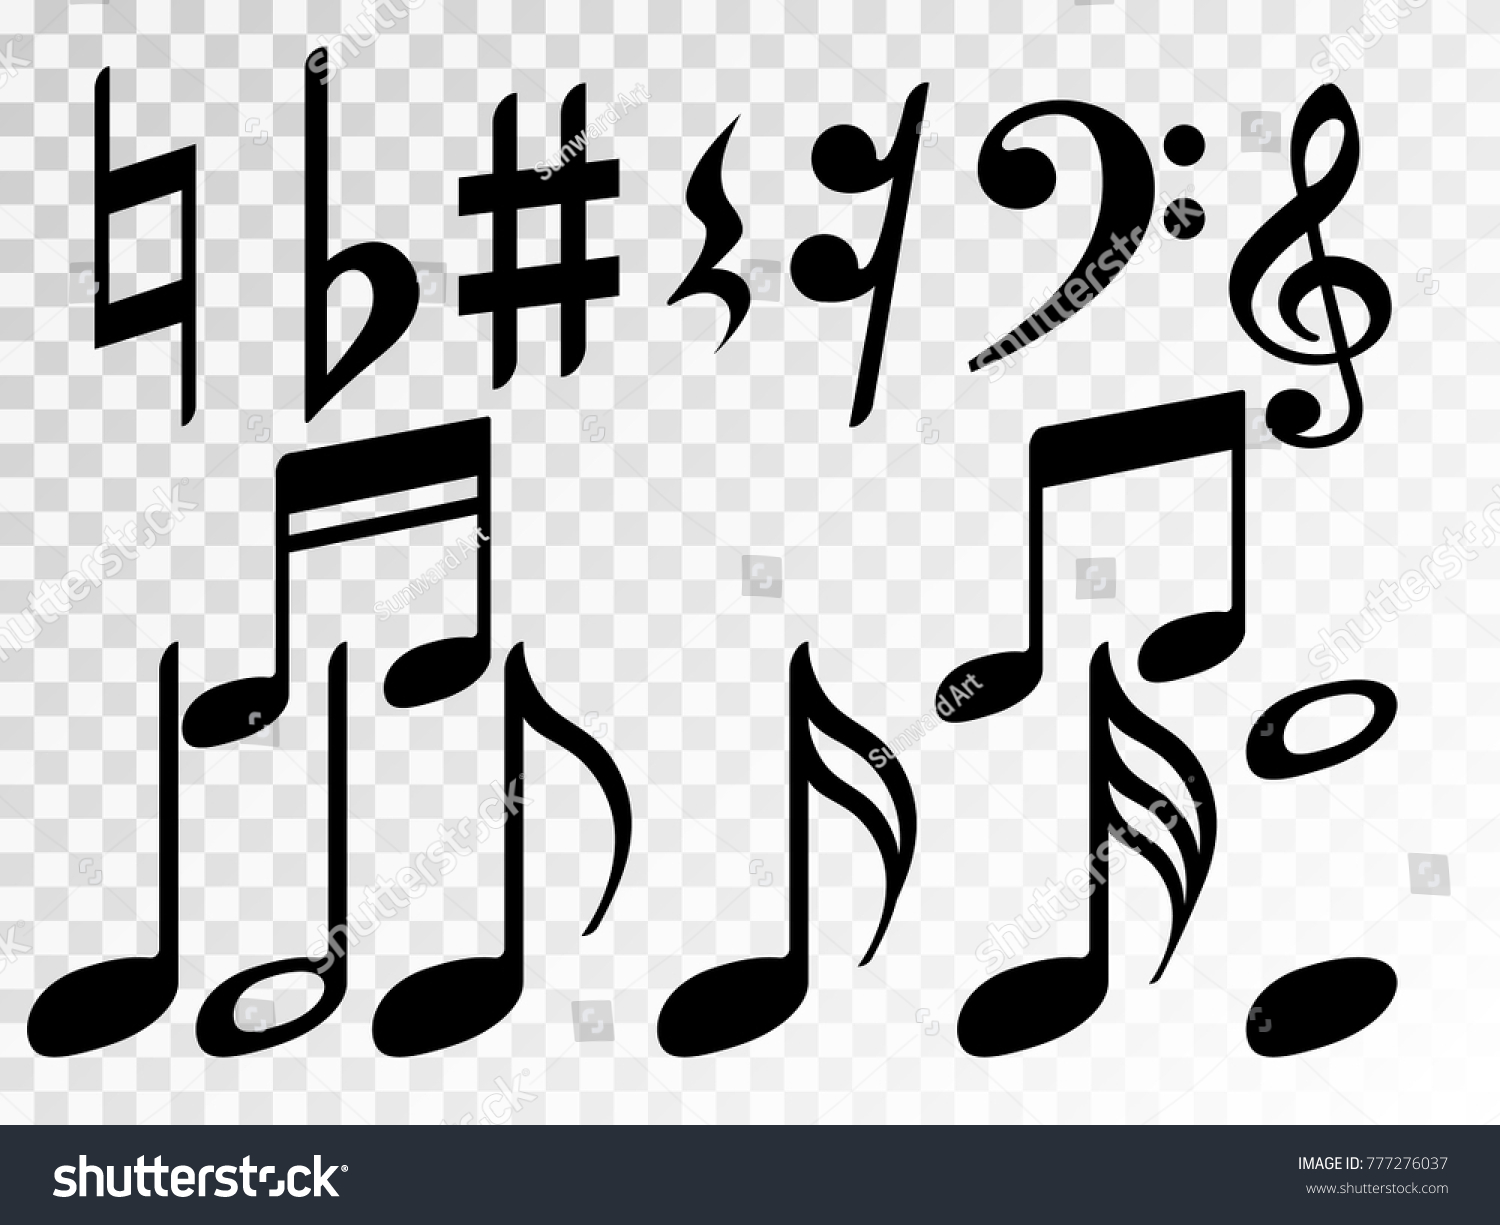 Music note icons vector set black stock vector 777276037 music note icons vector set black symphony or melody signs isolated on transparent background biocorpaavc Images